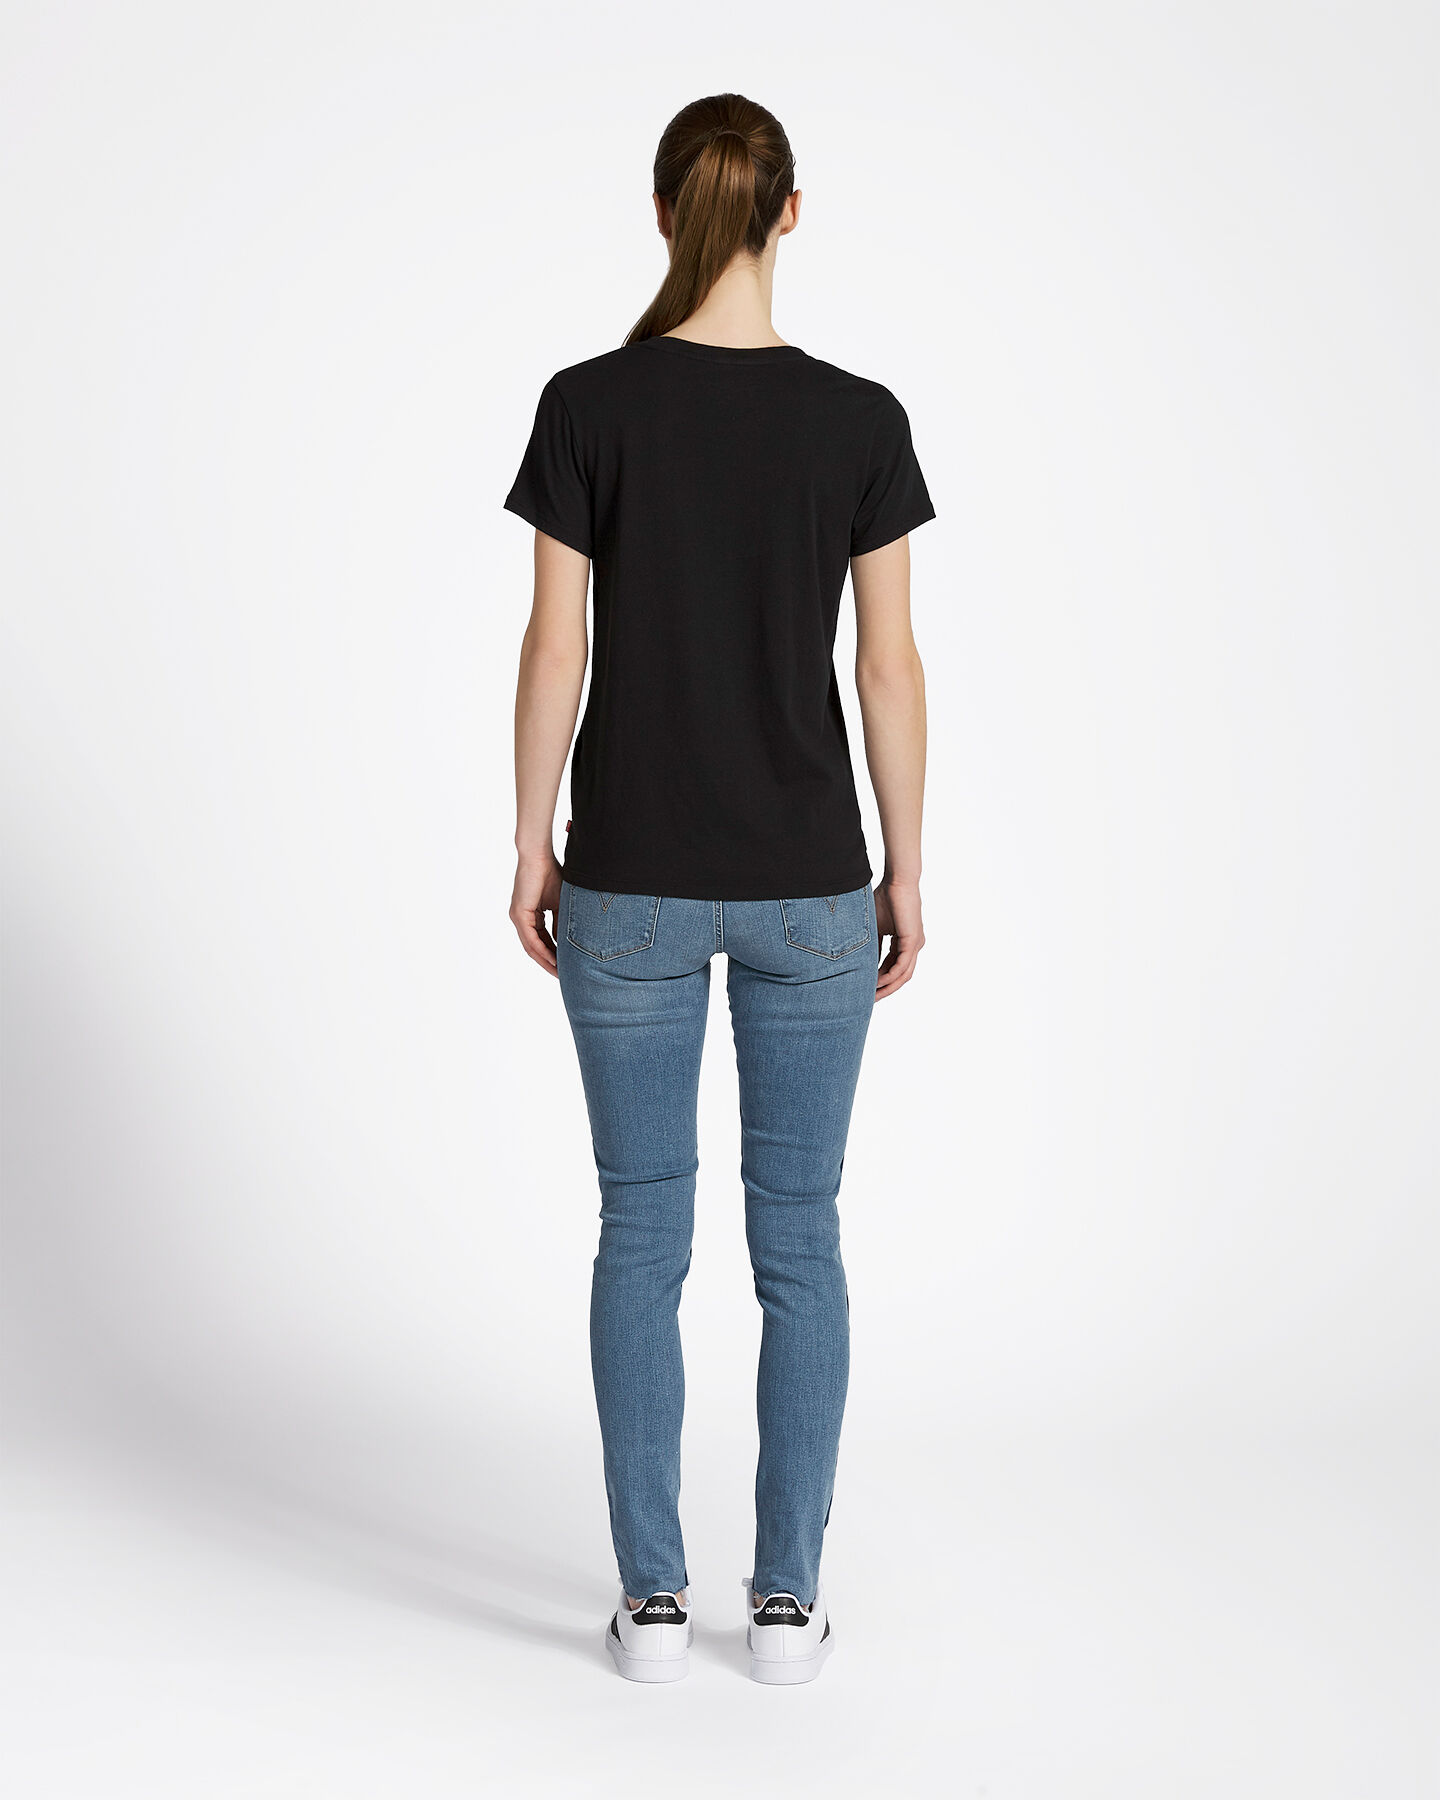 T-Shirt LEVI'S THE PERFECT GRAPHIC W S4063834 scatto 2